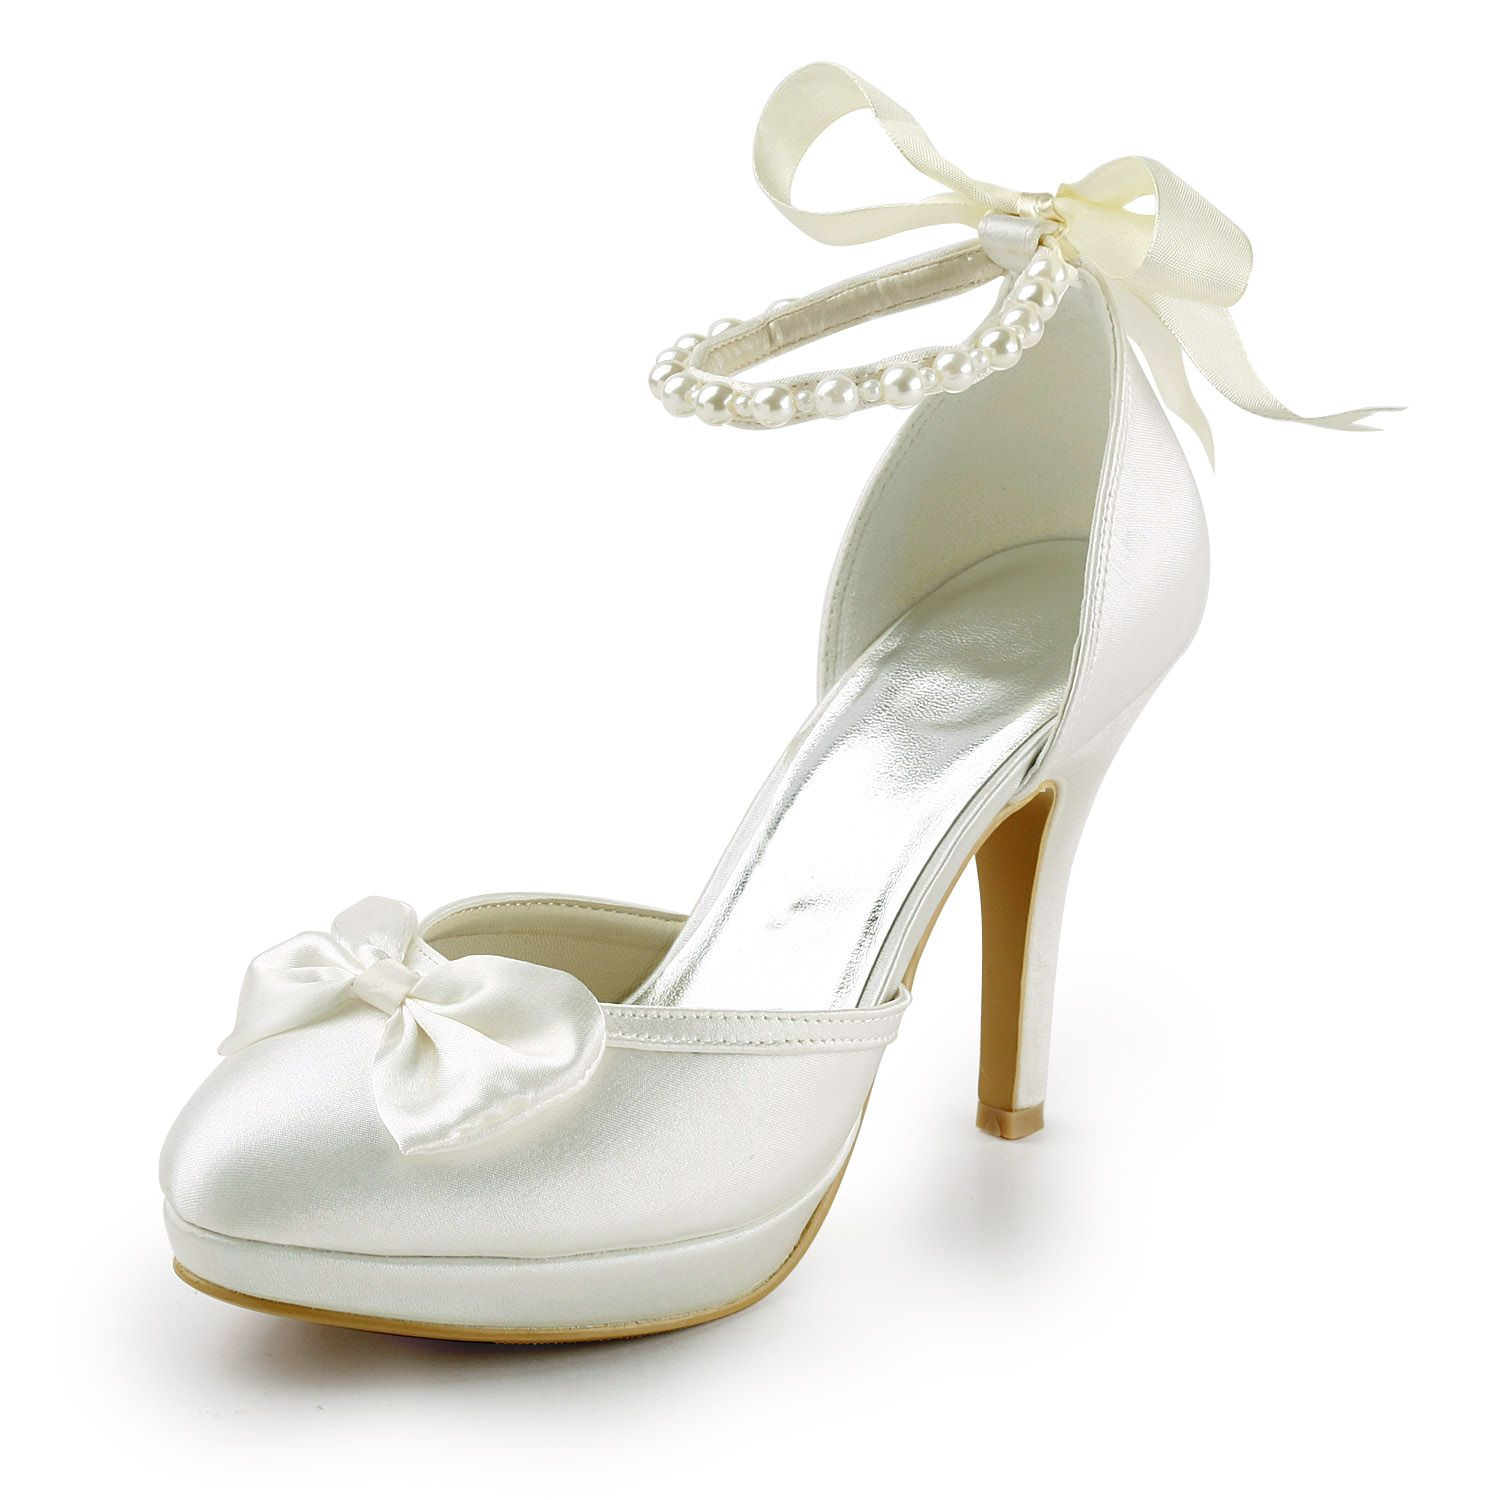 White Shoes (S23703C) for 450.00 Shoes